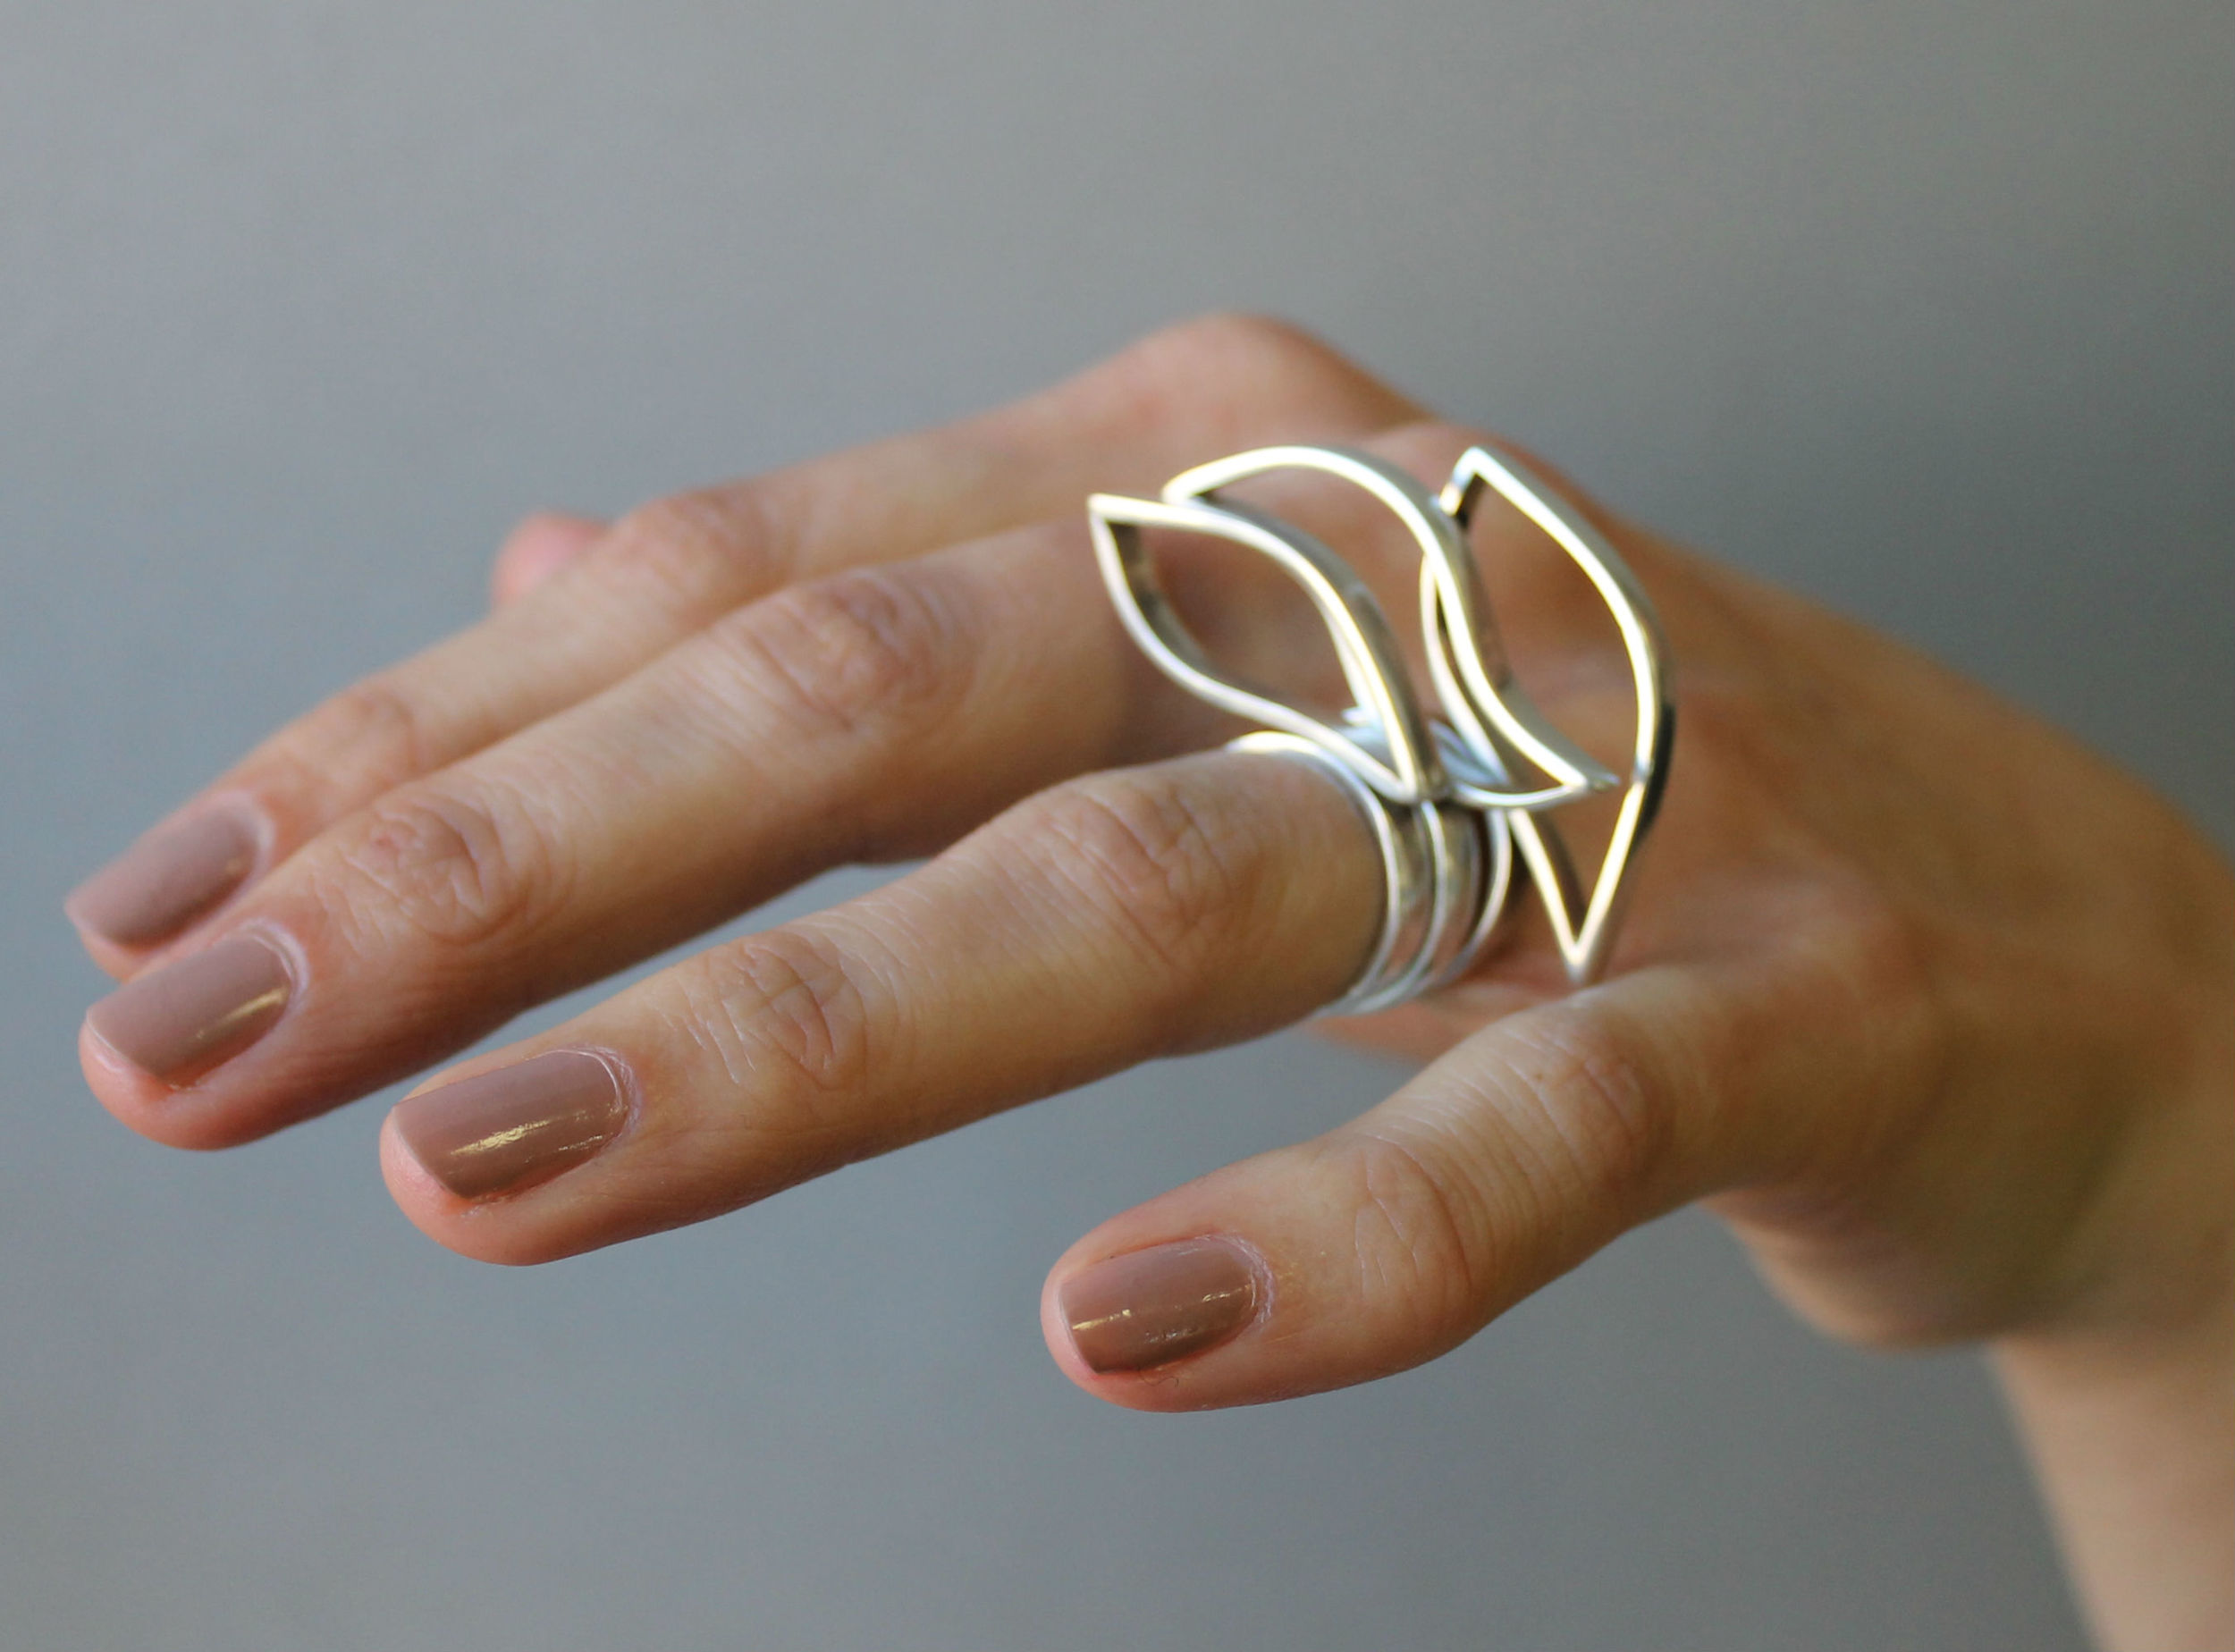 Three of my rings worn together as stacking rings. They also look great on their own!